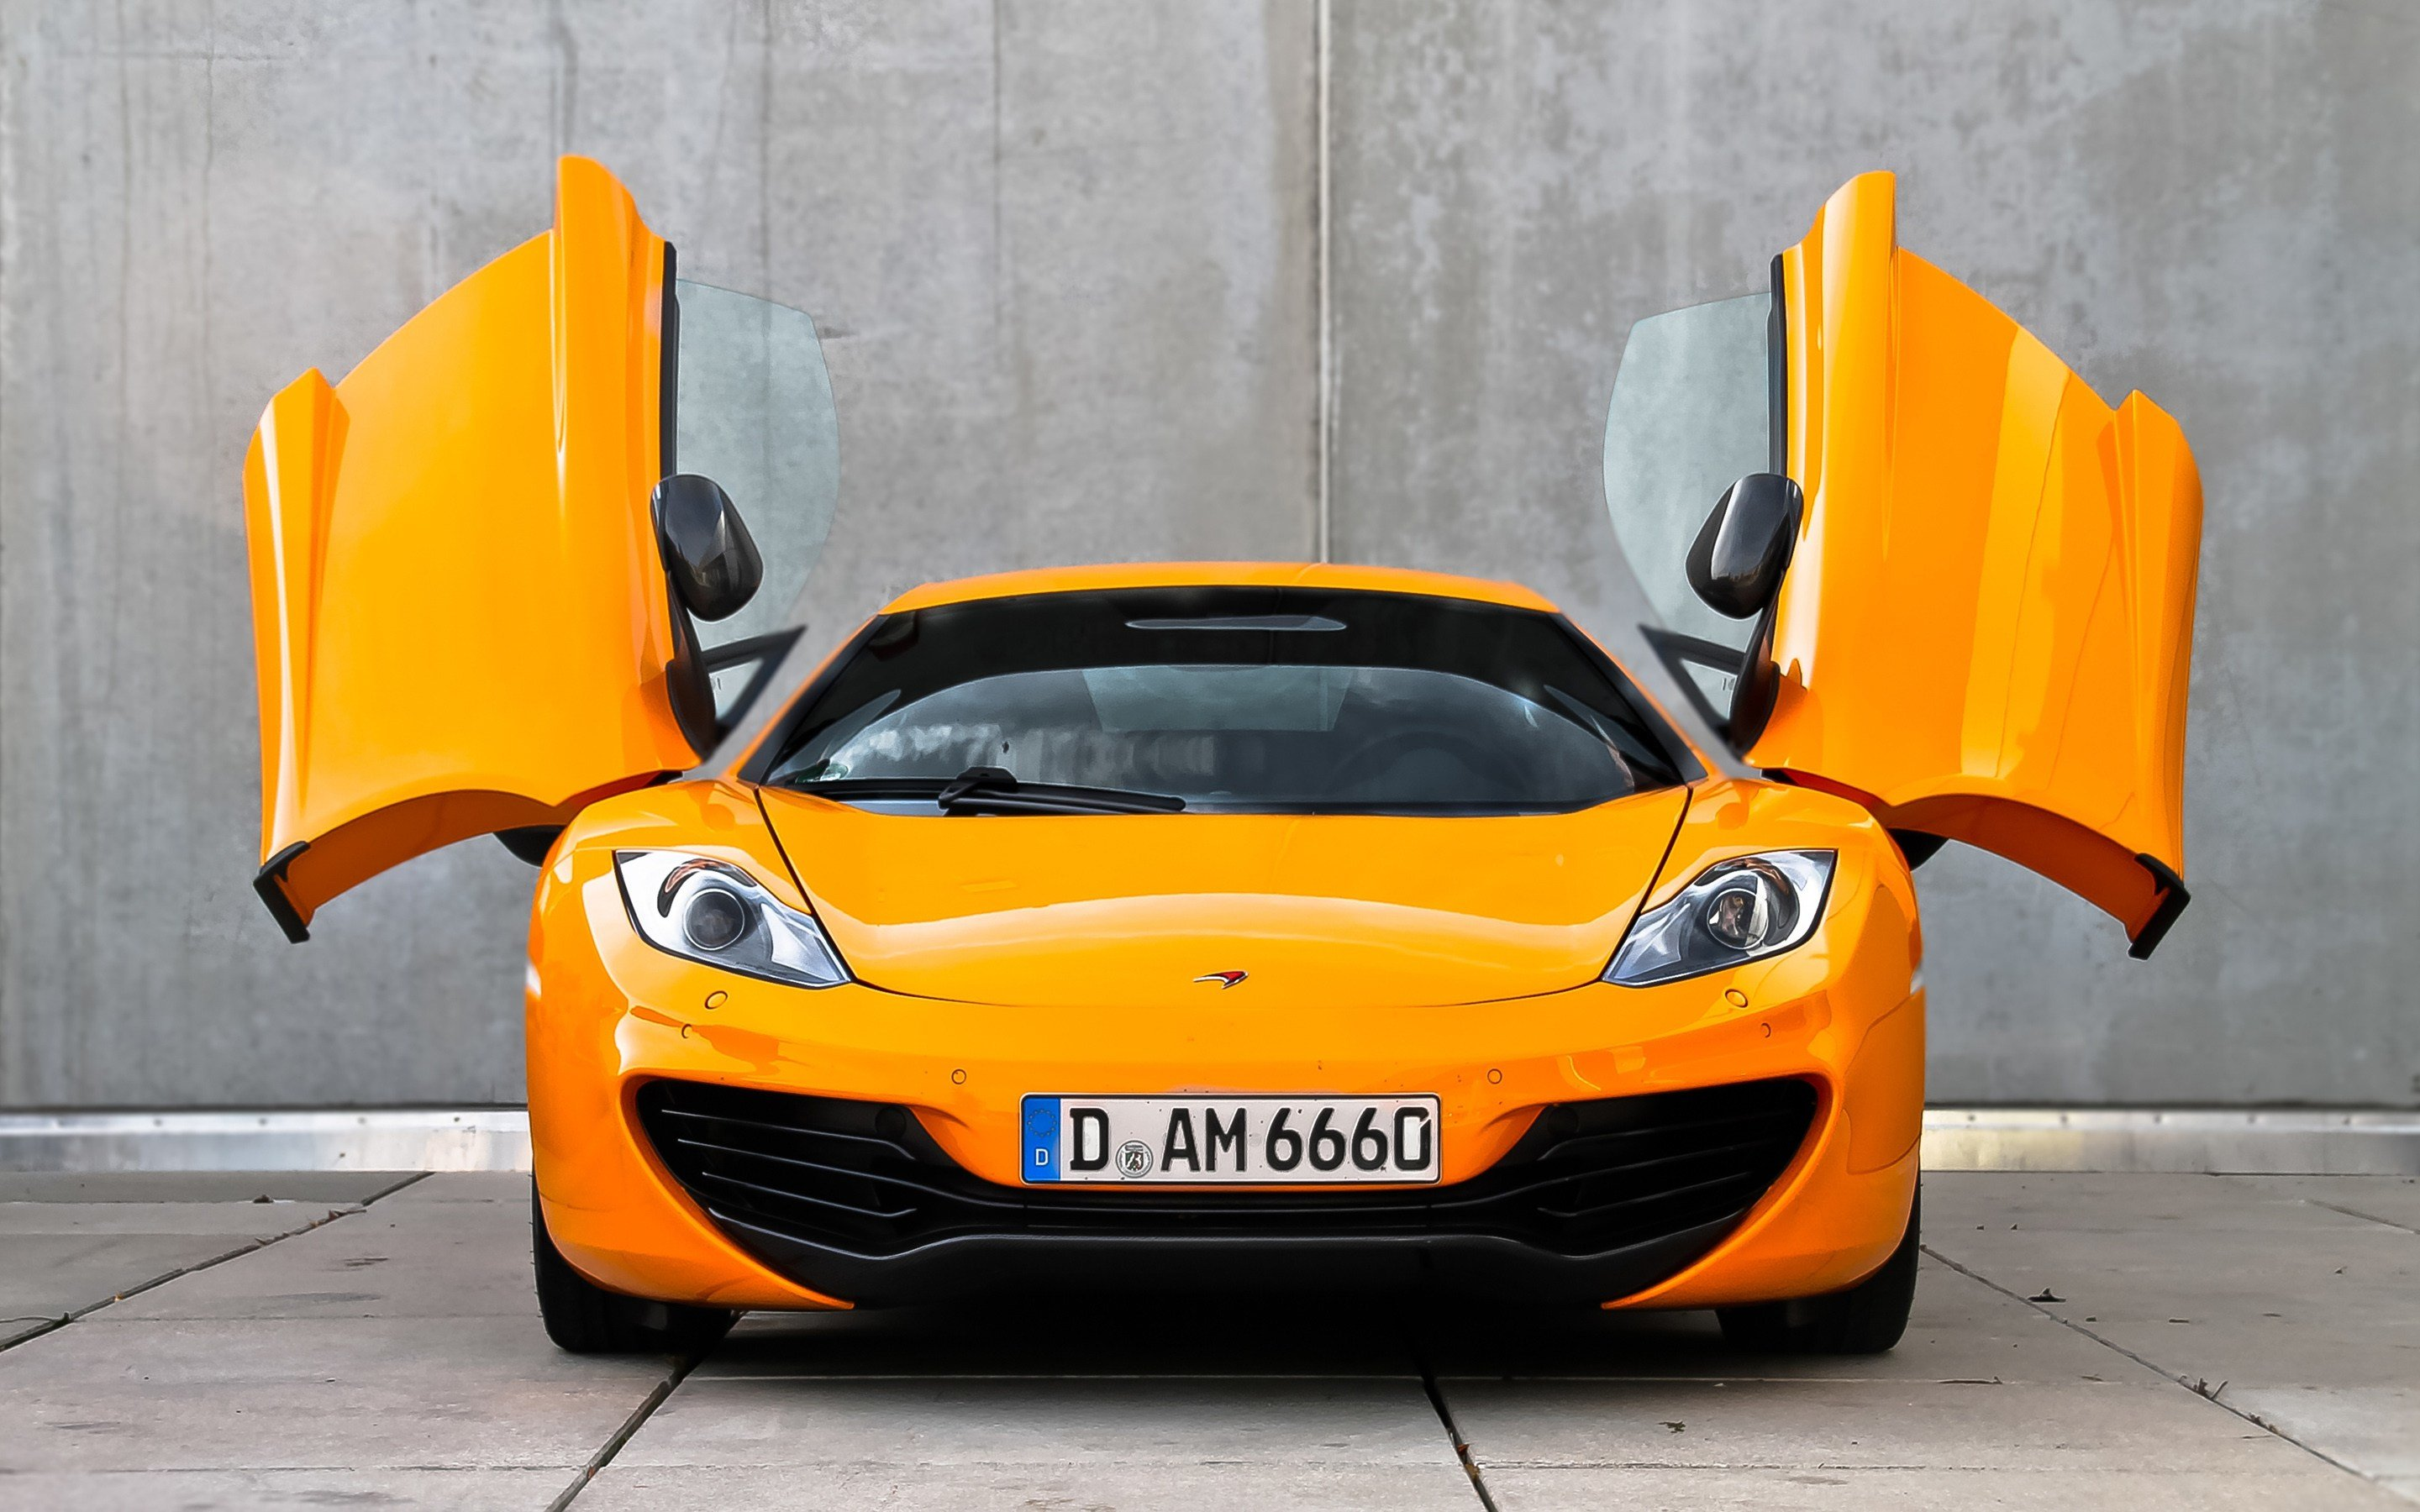 New Mclaren Mp4 12C Car Wallpaper Hd Car Wallpapers Id 3399 On This Month